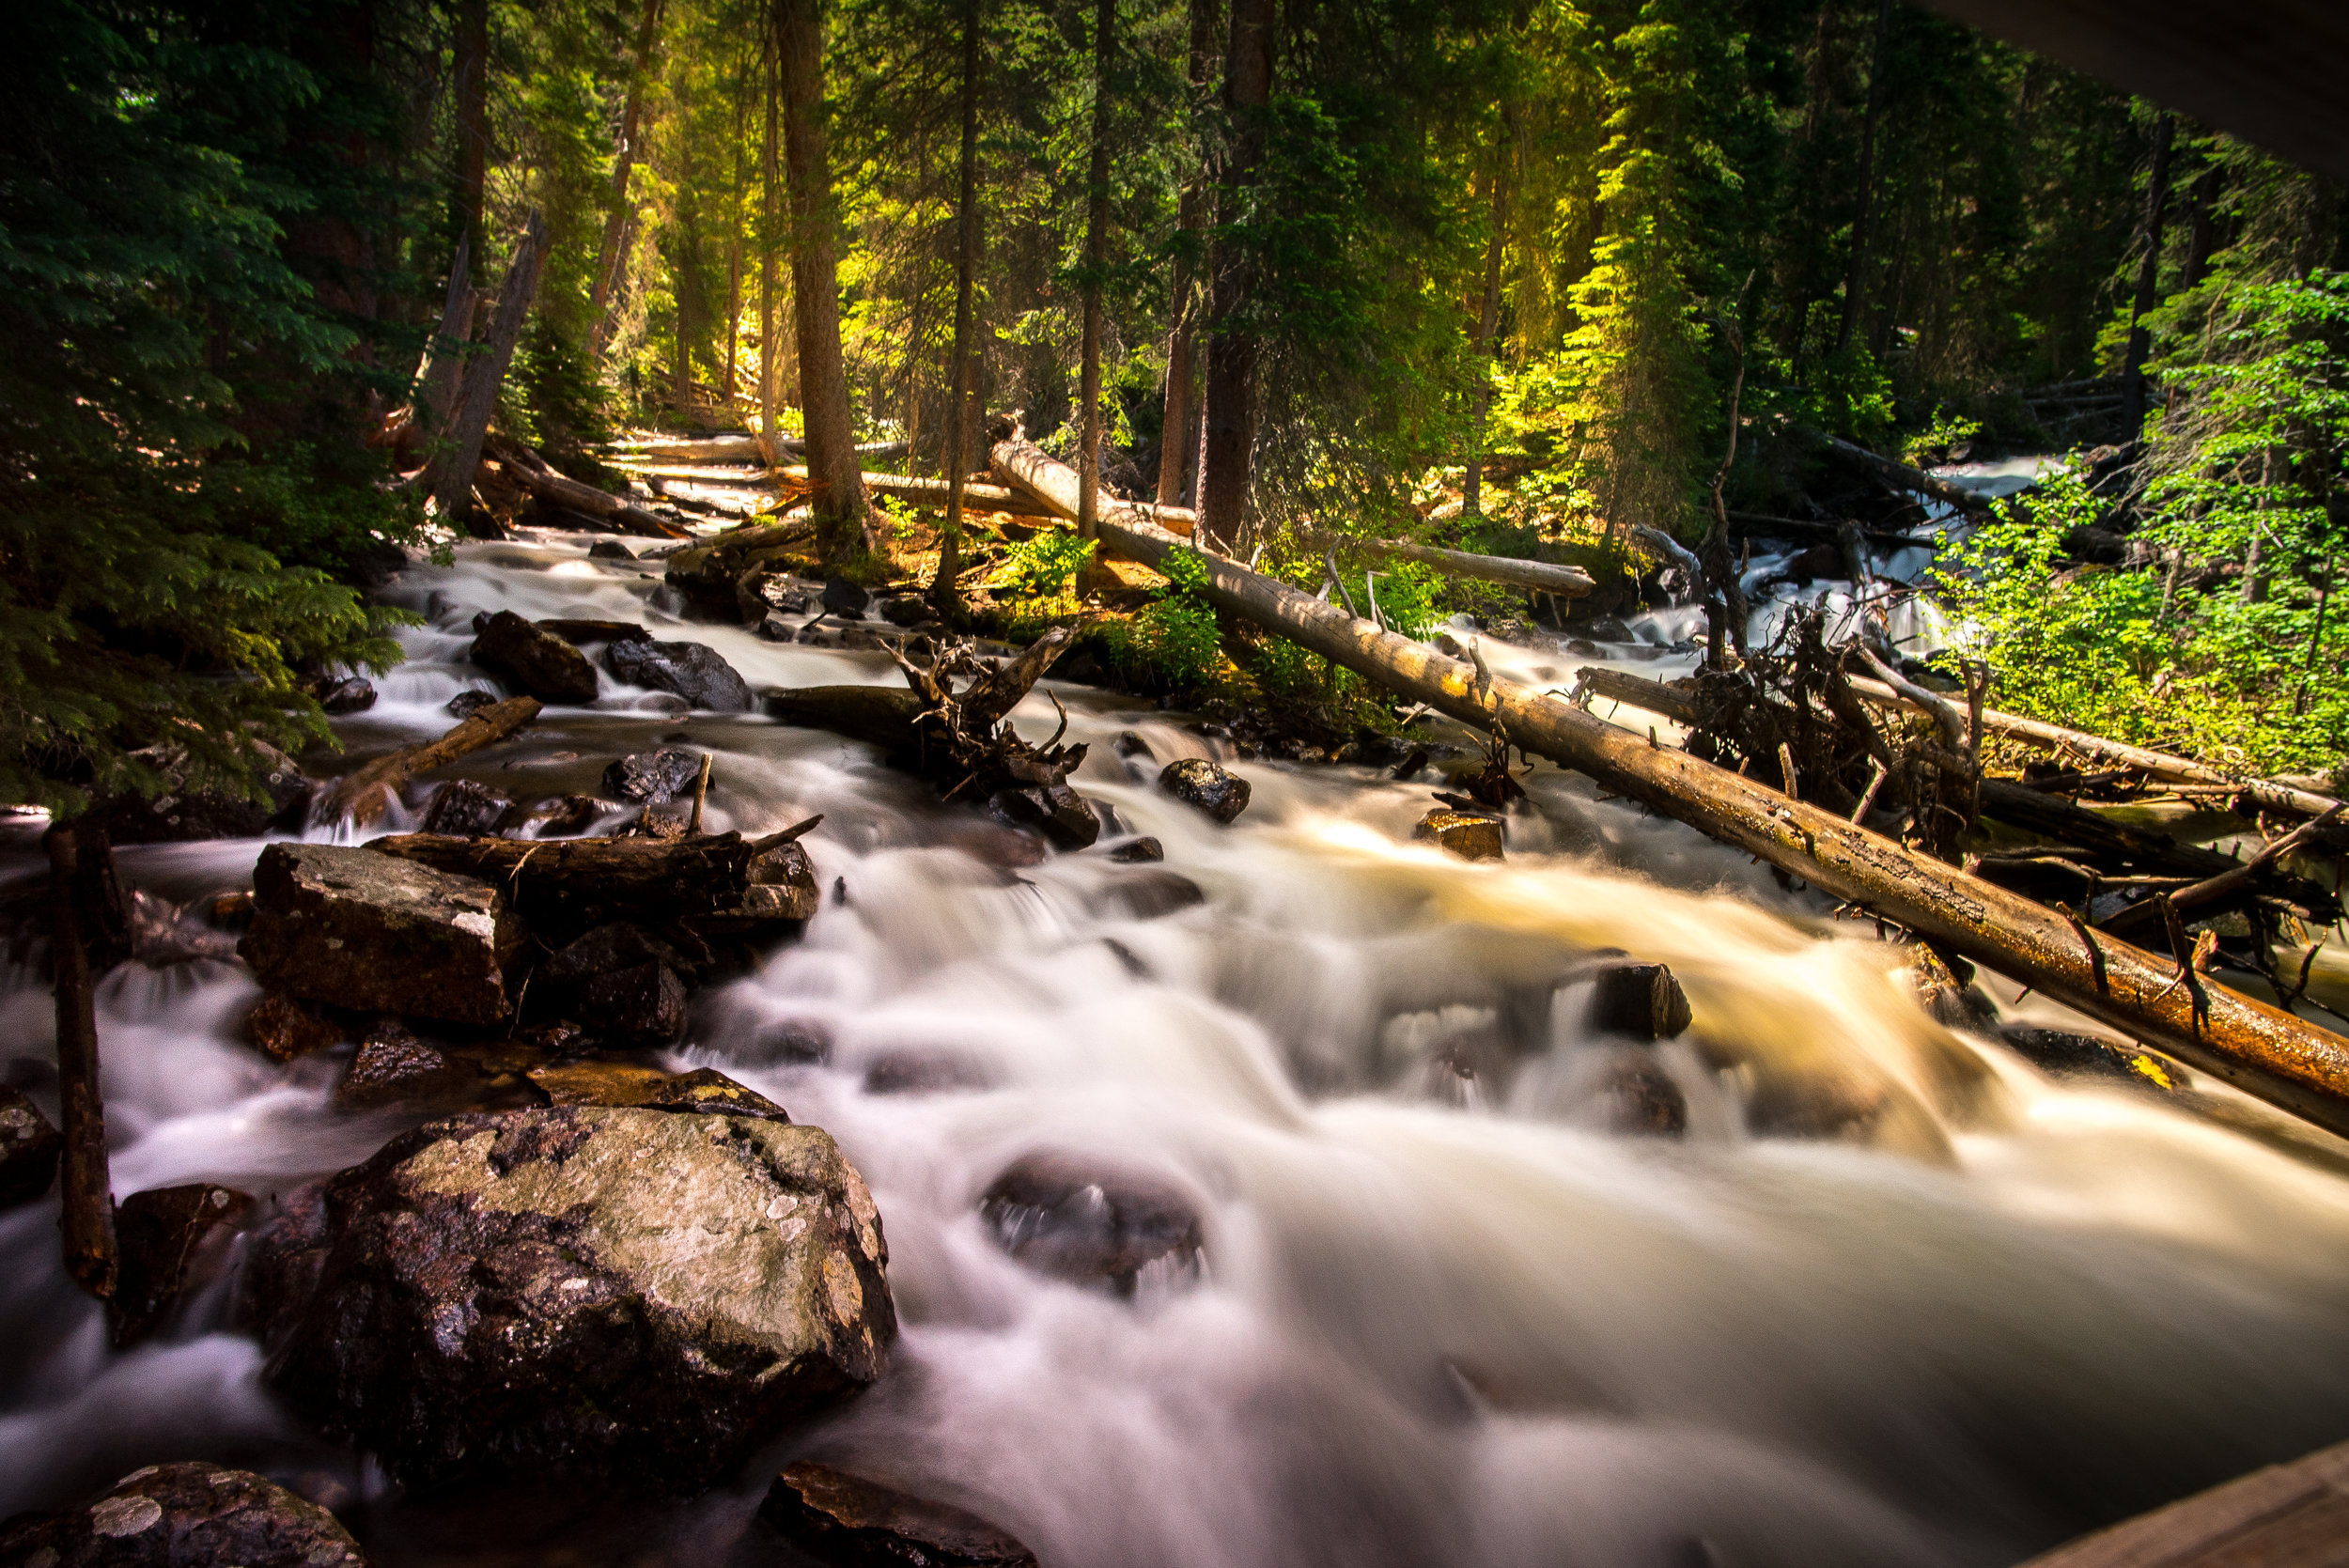 One fallen rock or log can make a river completely impassable.